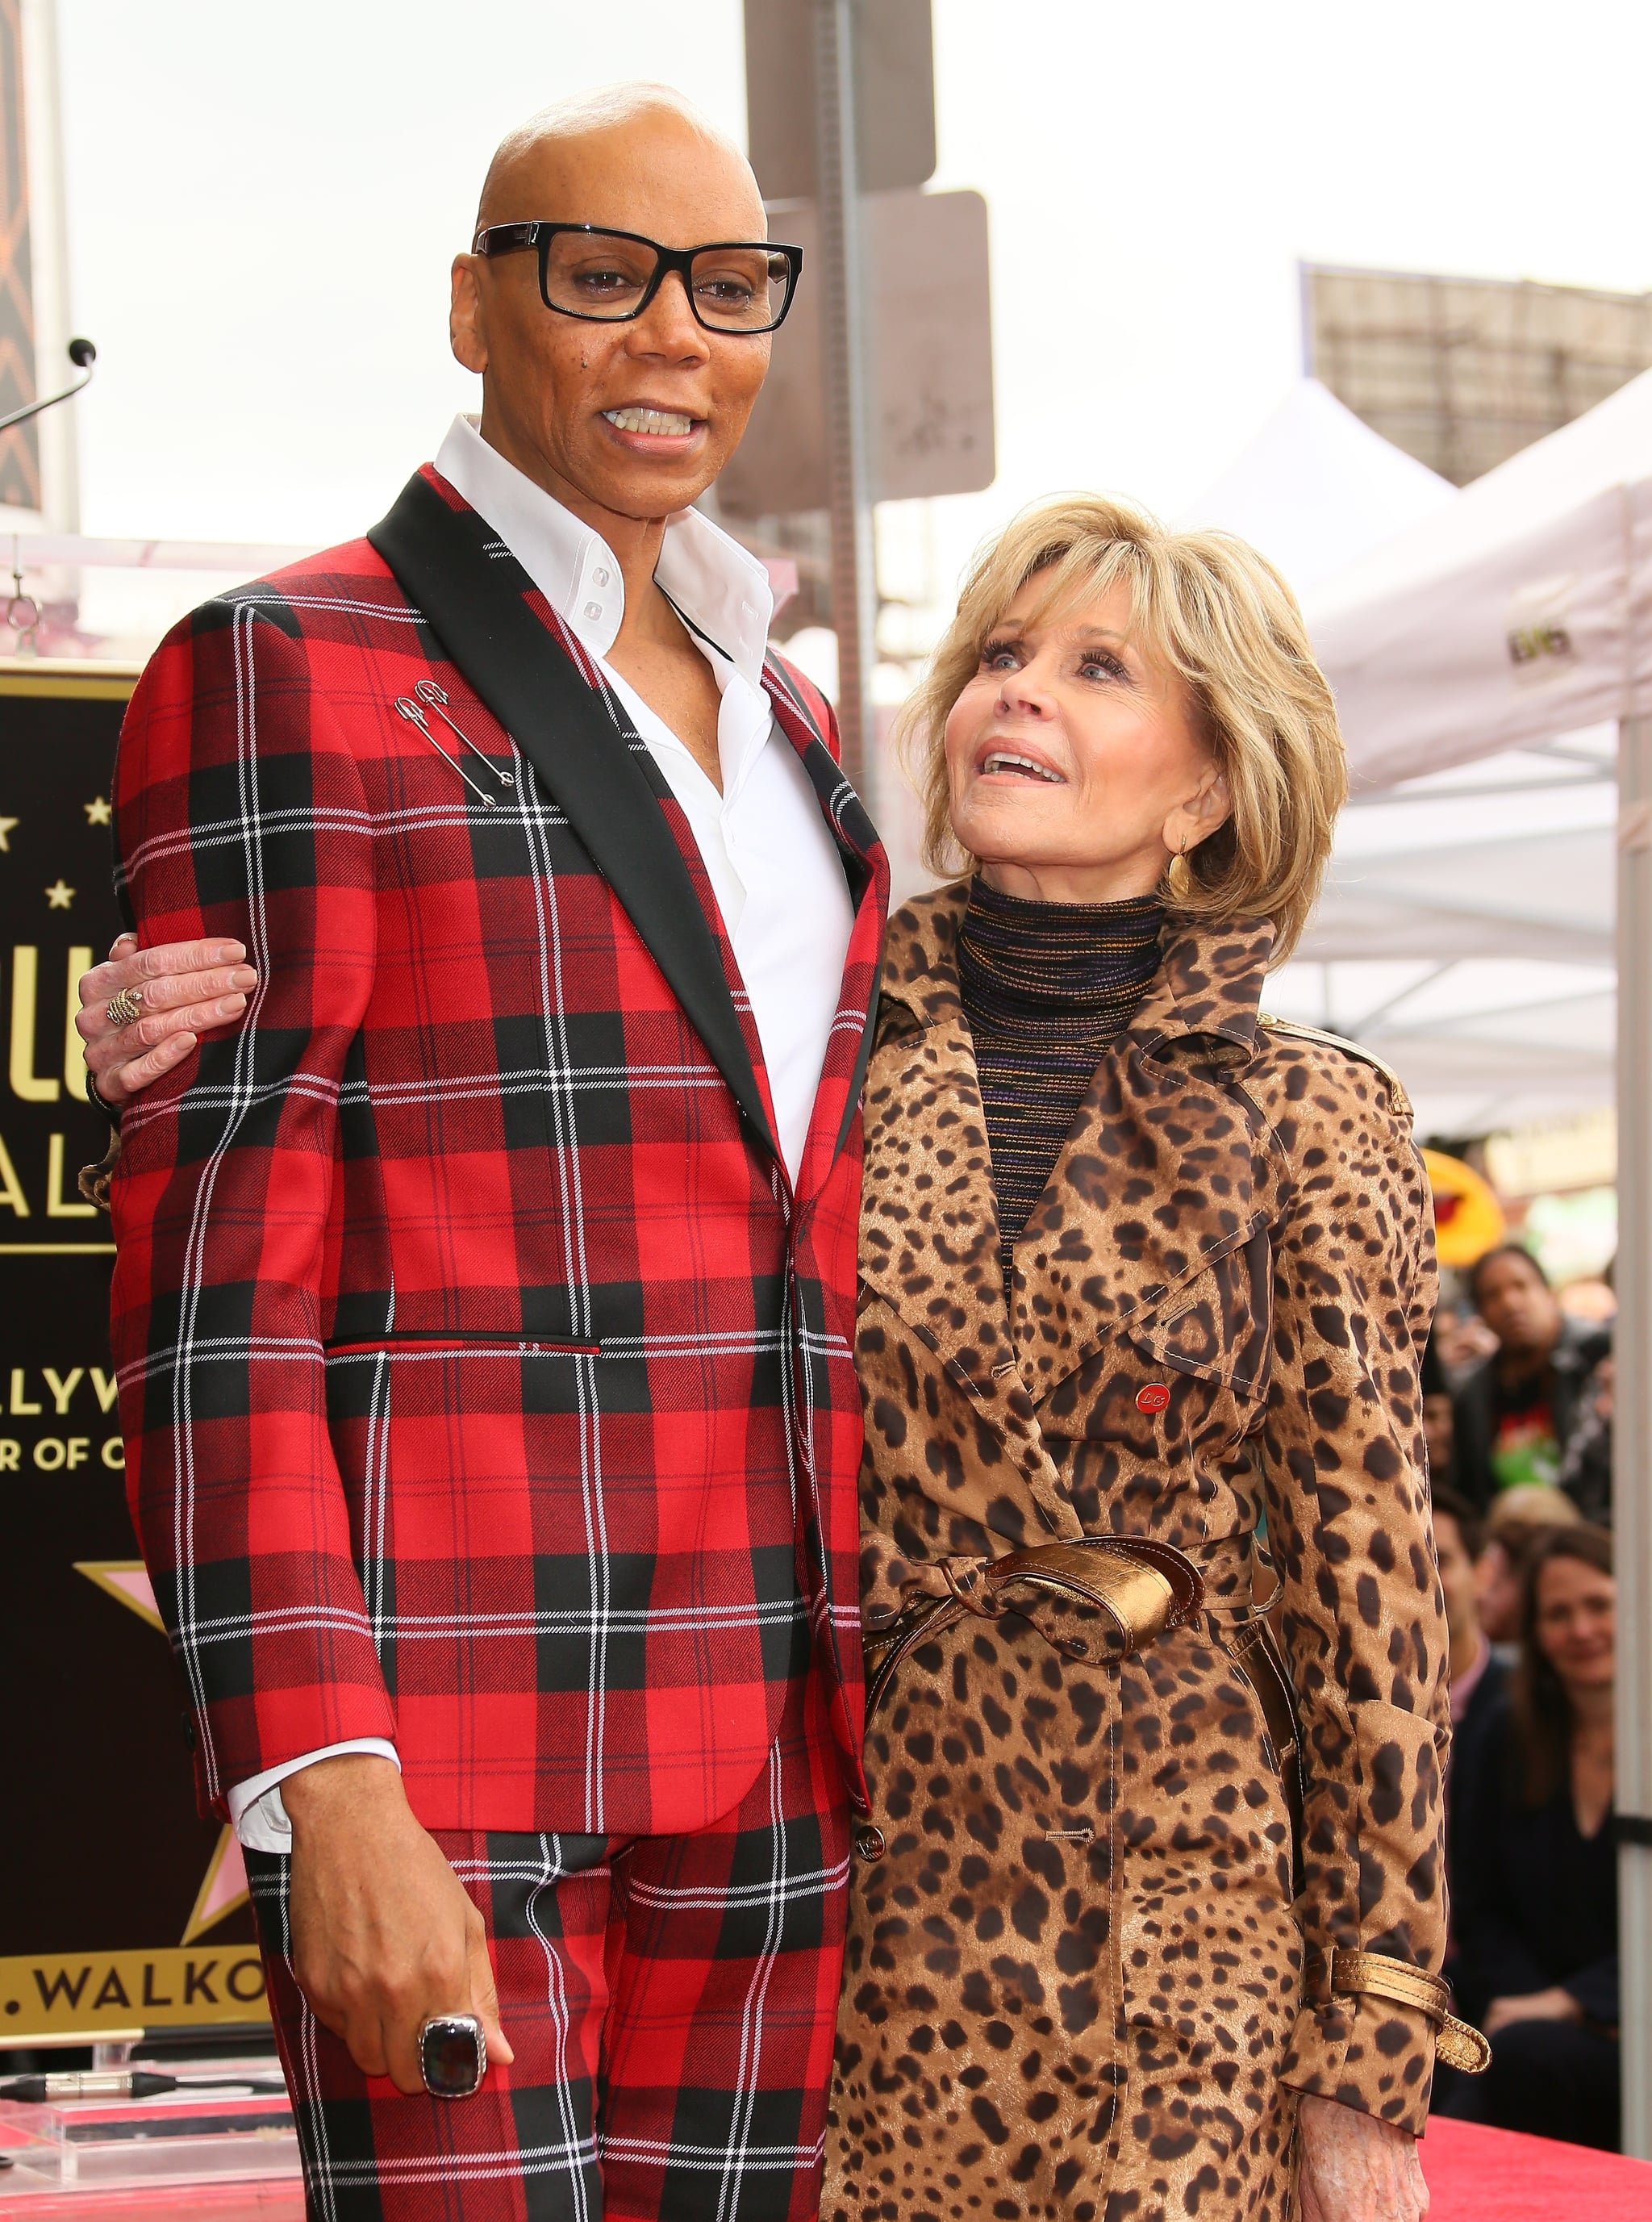 HOLLYWOOD, CA - MARCH 16: RuPaul and Jane Fonda attend a ceremony honoring him with a Star on The Hollywood Walk Of Fame on March 16, 2018 in Hollywood, California. (Photo by JB Lacroix/WireImage)